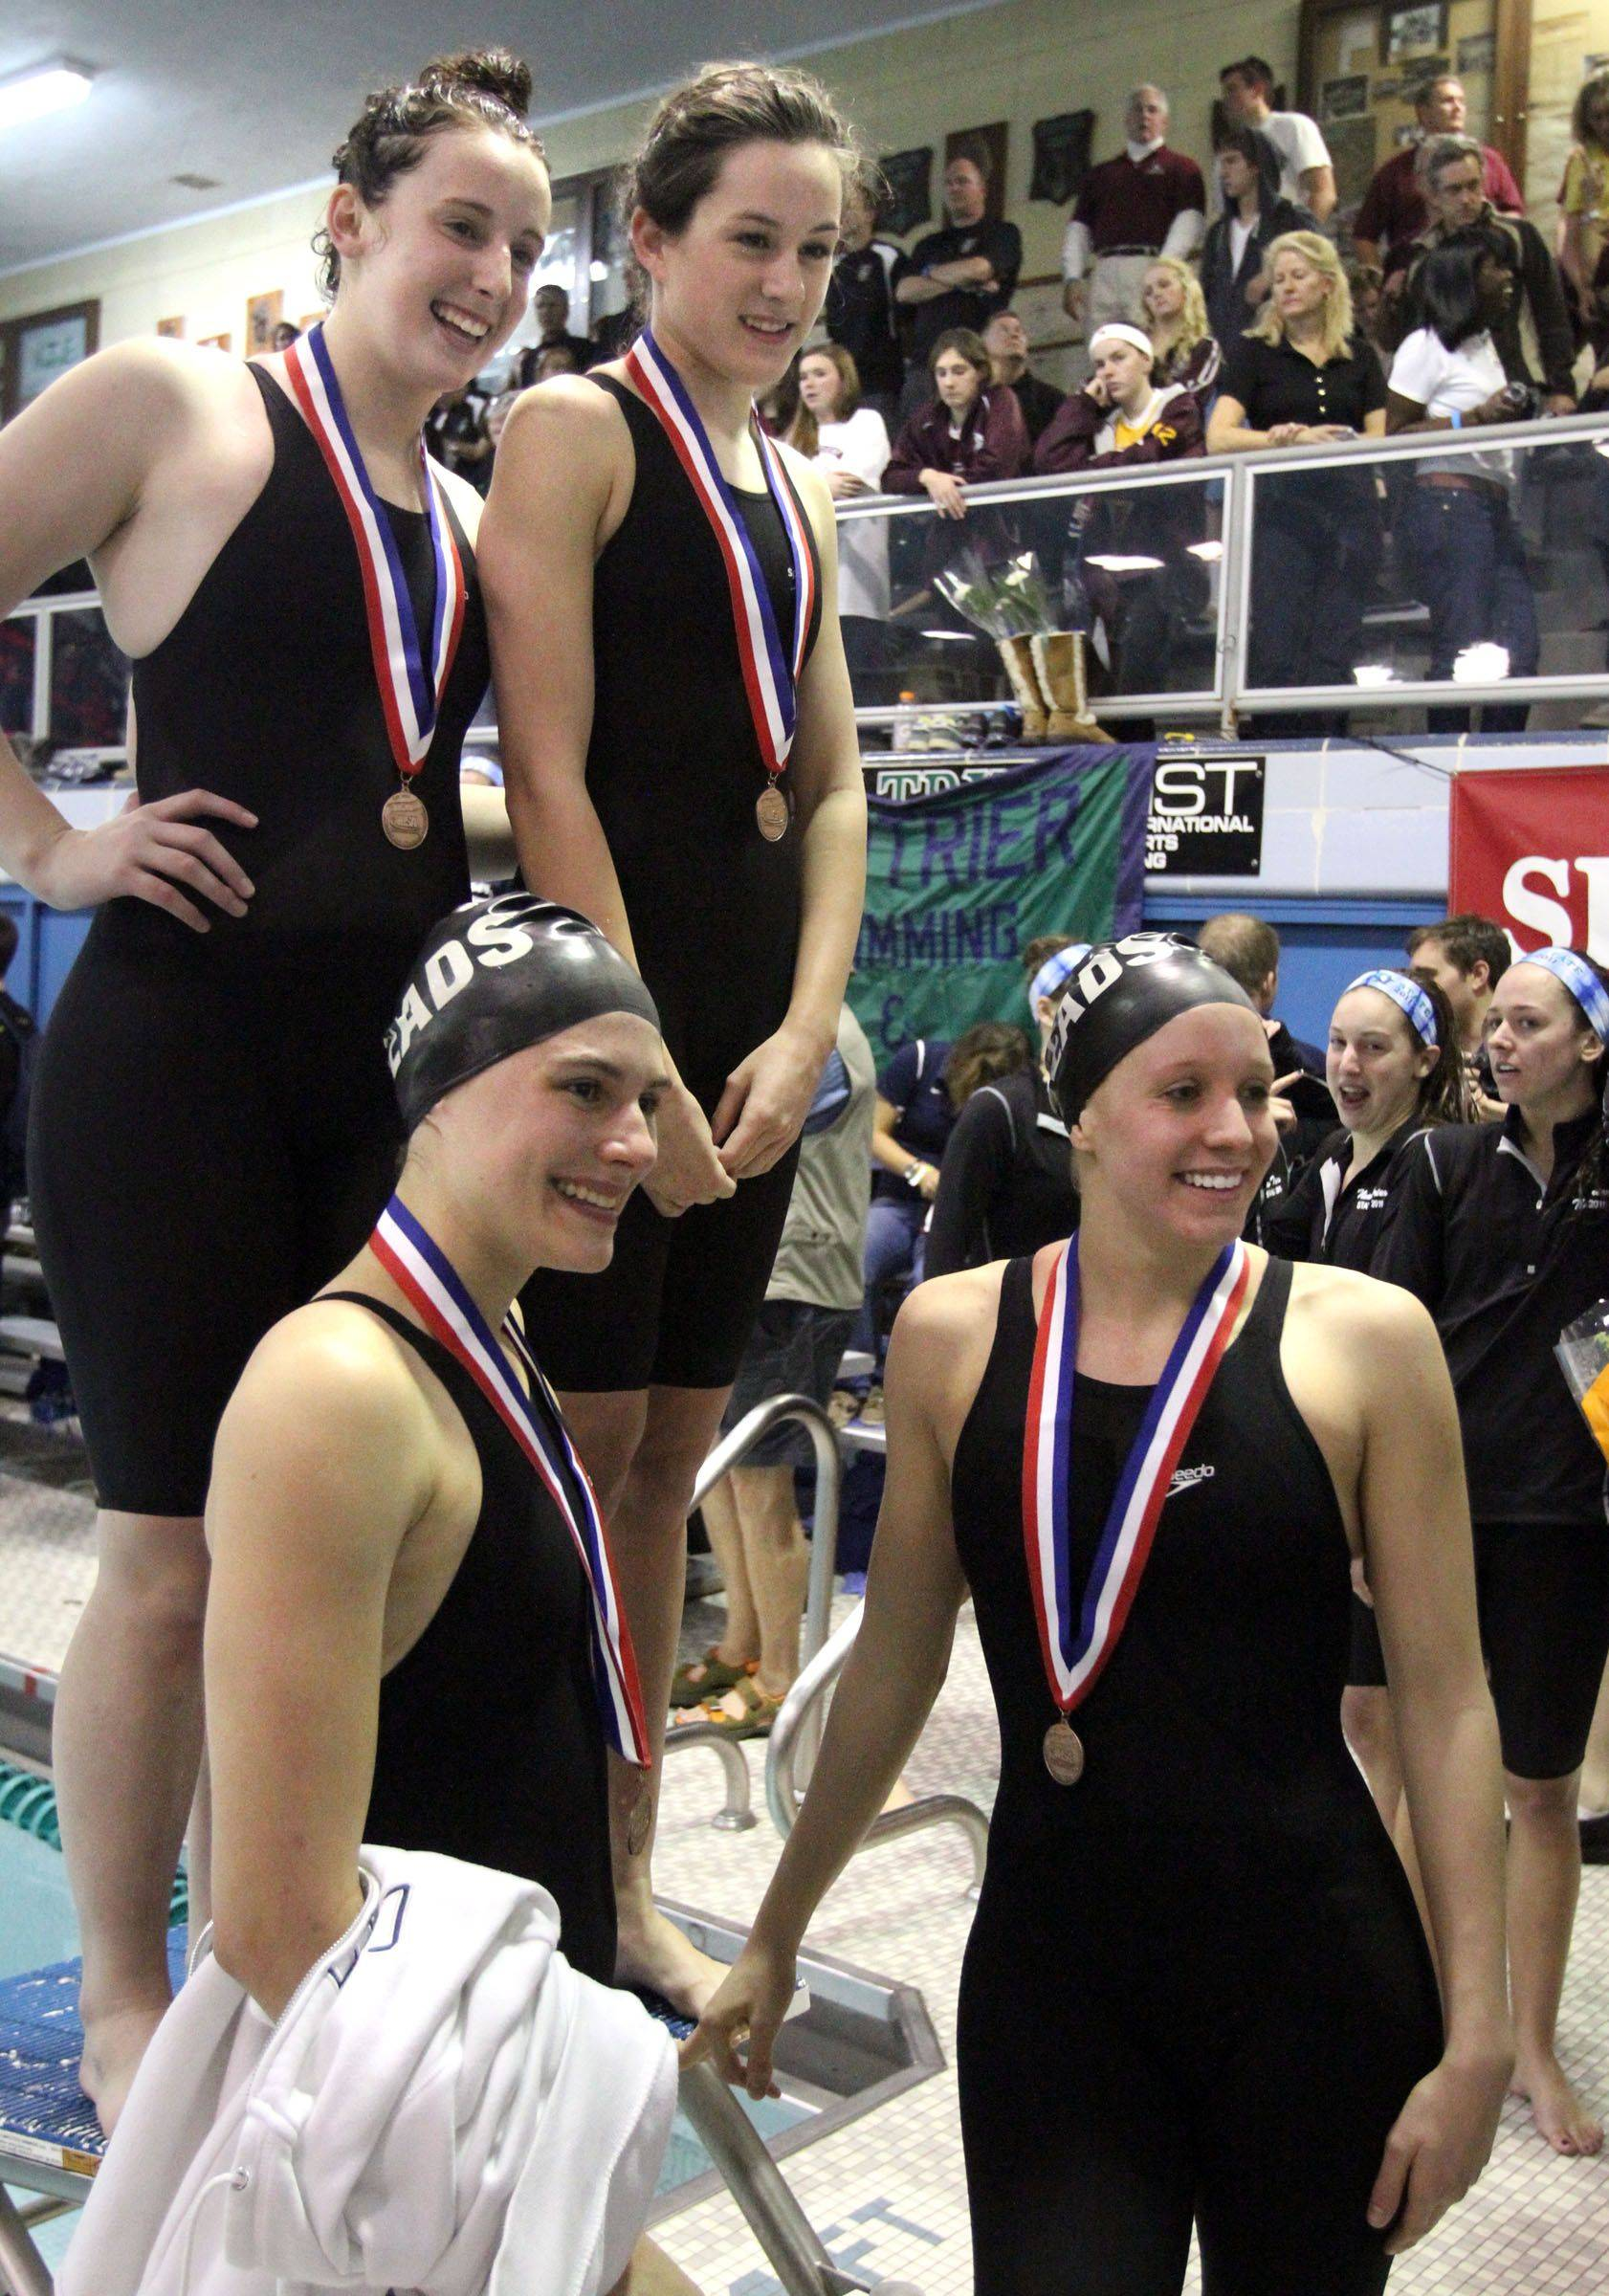 Rosary's Emily Launer, Rachel Burke, Molly Coonce, and Erin Hart placed seventh in the 400-yard freestyle relay at IHSA state championships in Winnetka on Saturday, November 19th.